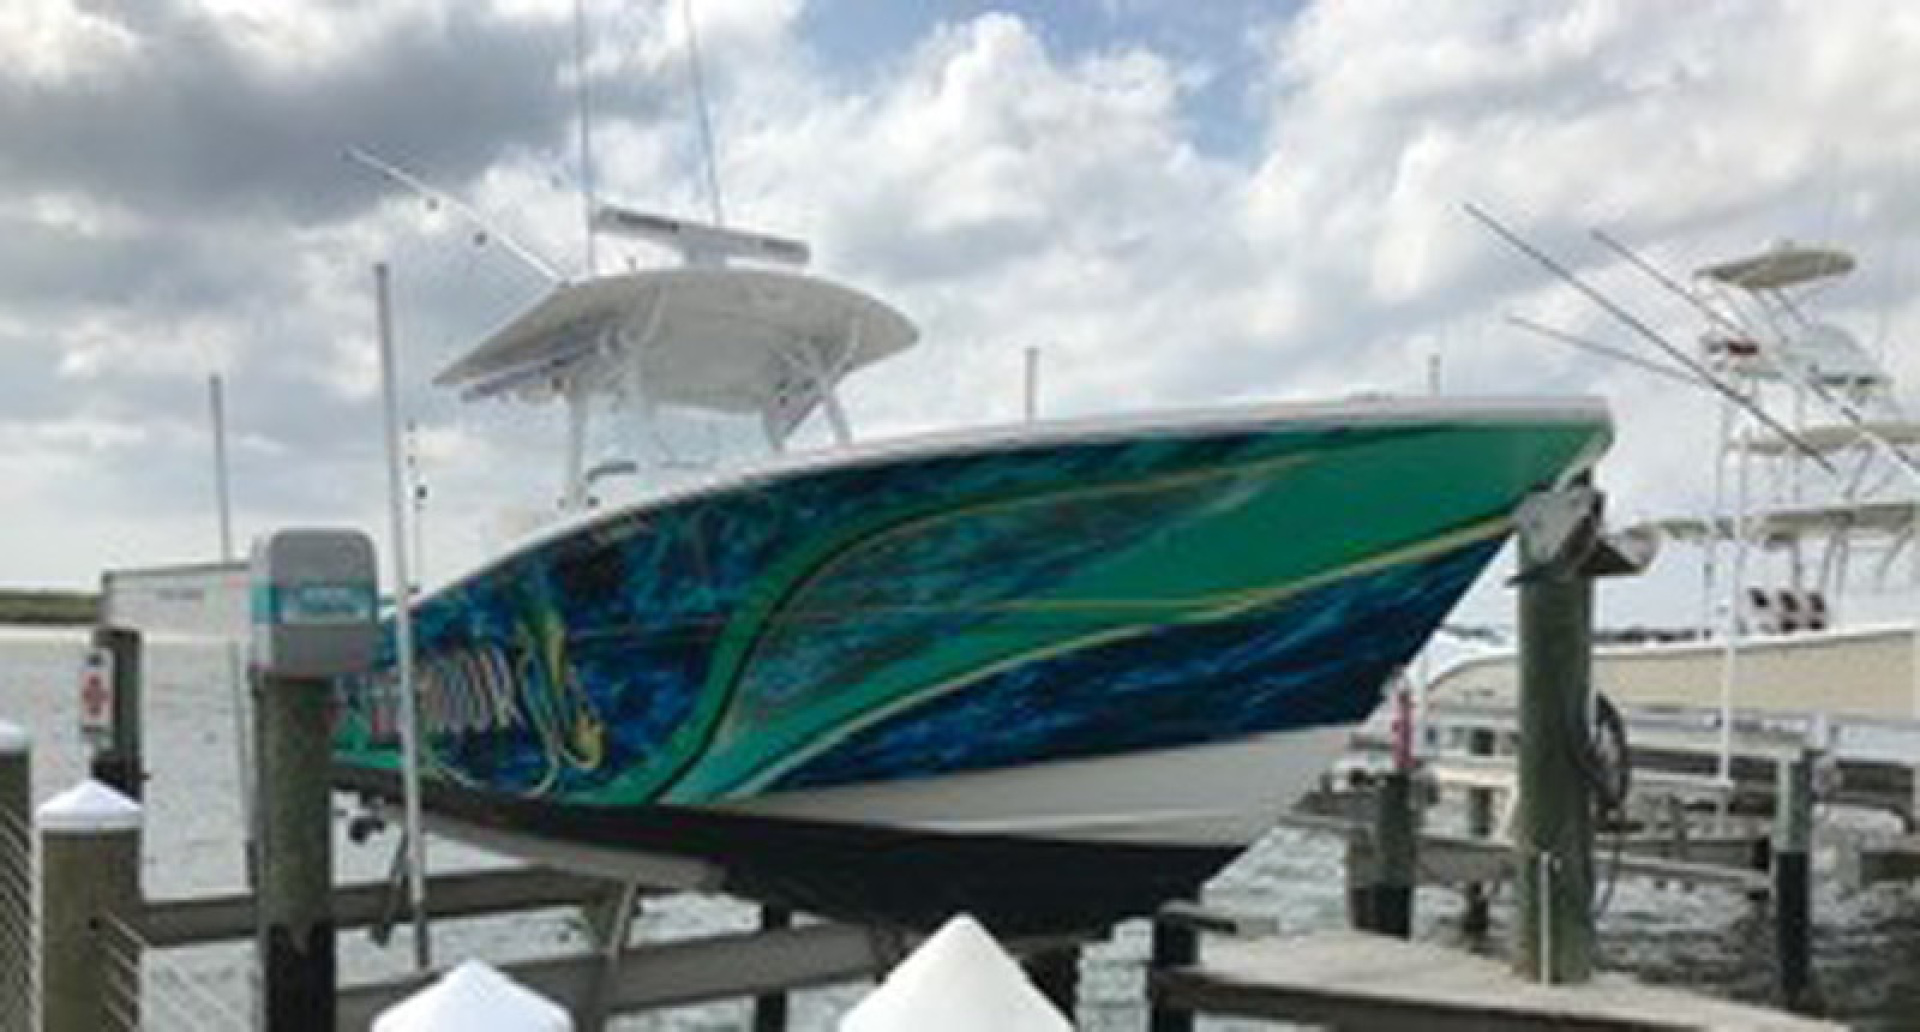 No Name is a Regulator 34CC Yacht For Sale in Daytona Beach--0